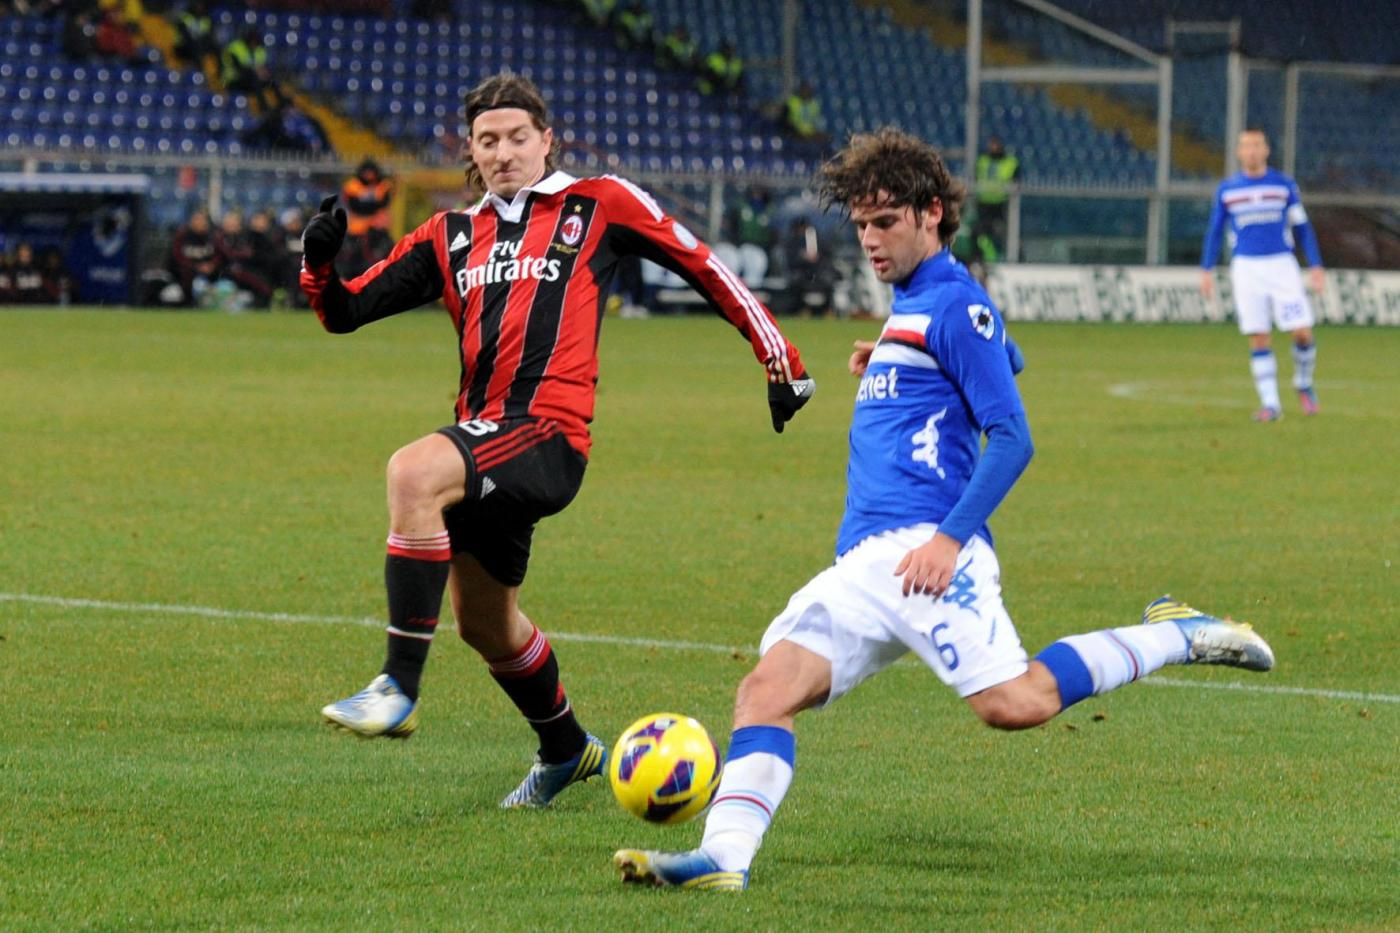 sampdoria- milan - photo #8